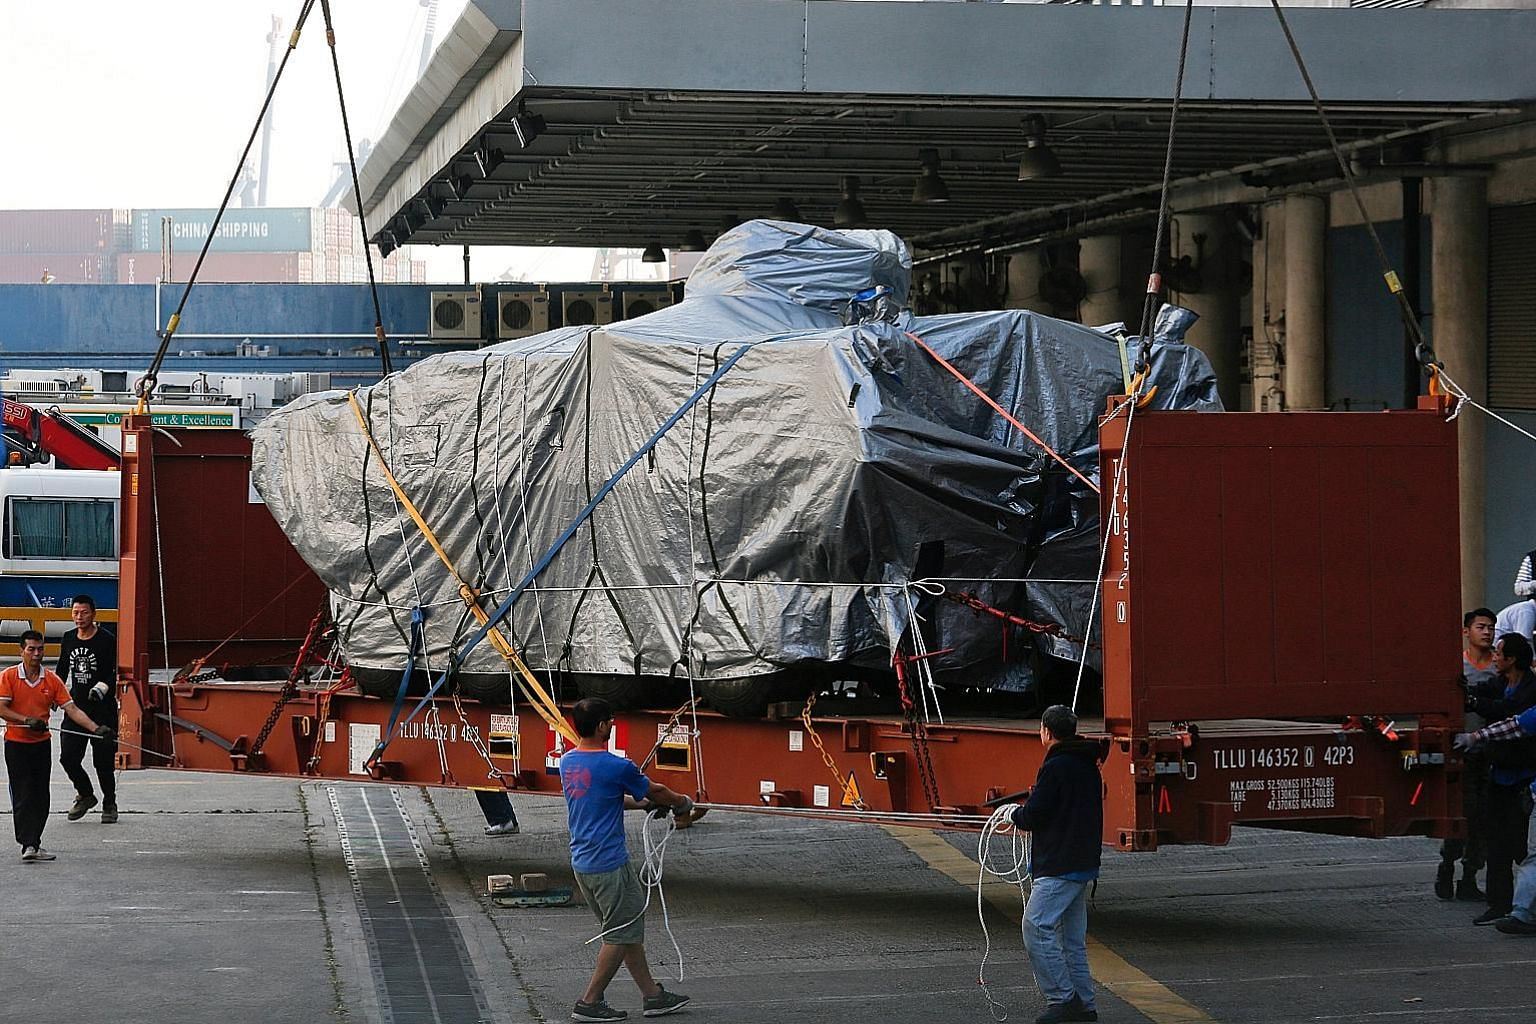 One of the nine Singapore Armed Forces Terrex armoured vehicles being prepared to be loaded onto a truck at a cargo terminal in Hong Kong yesterday afternoon. On Tuesday, more than two months after the vehicles were detained while in transit on the w